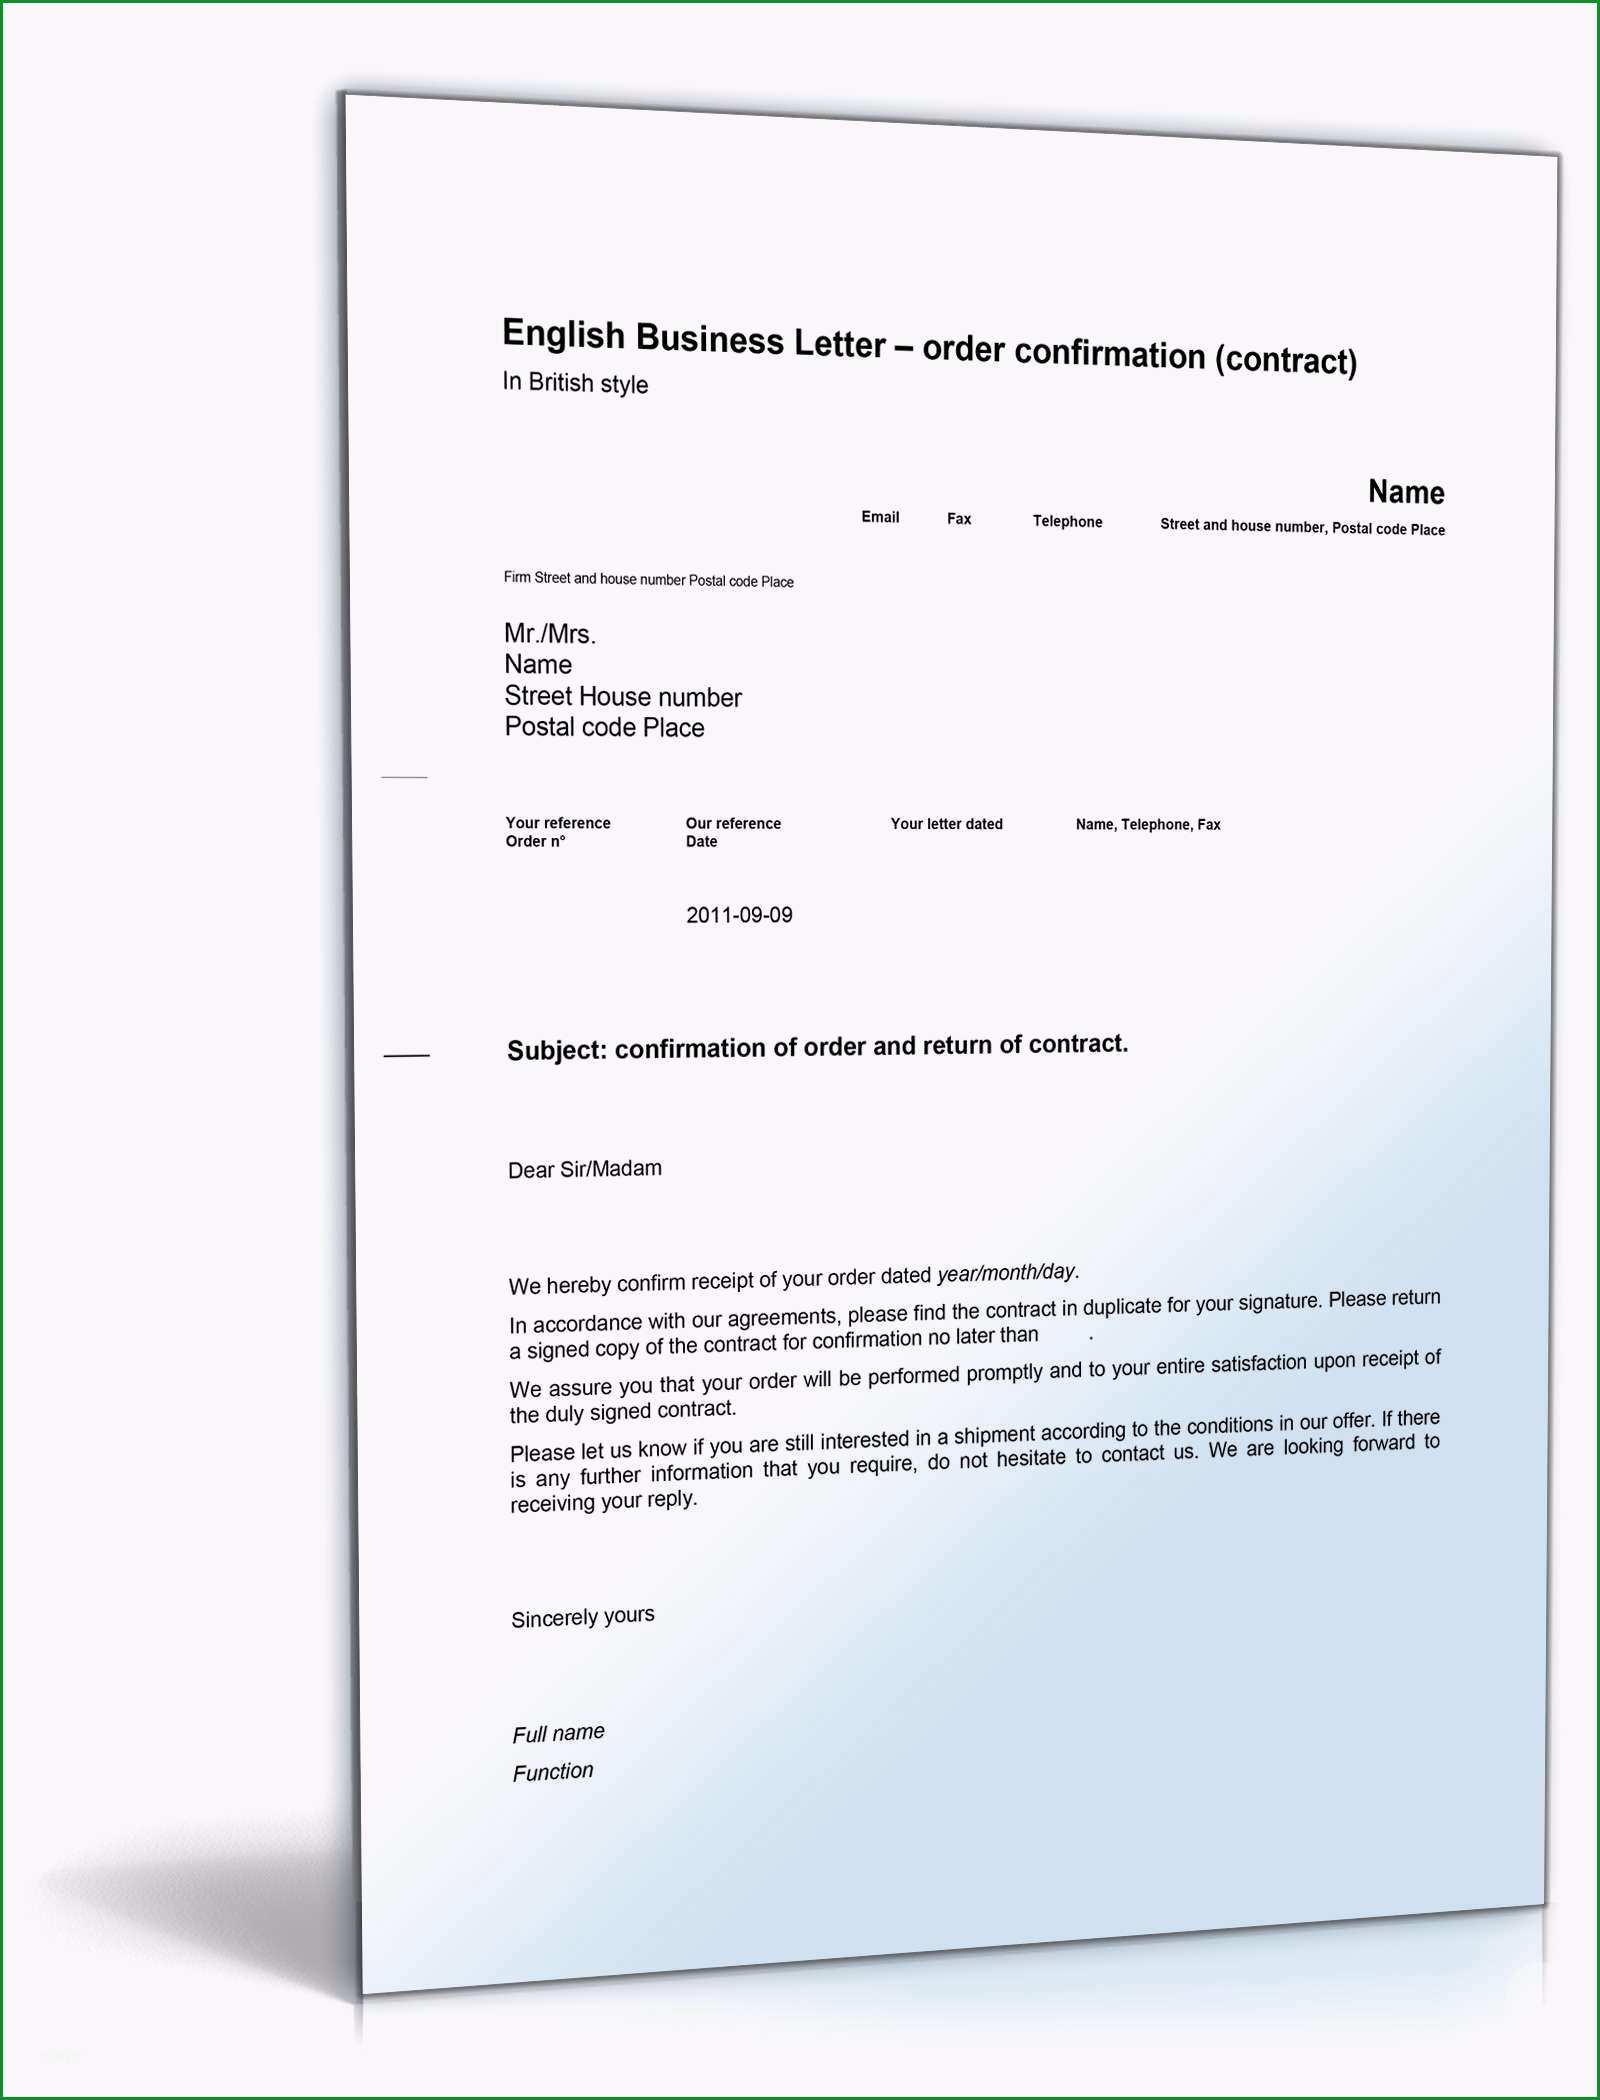 order confirmation contract english